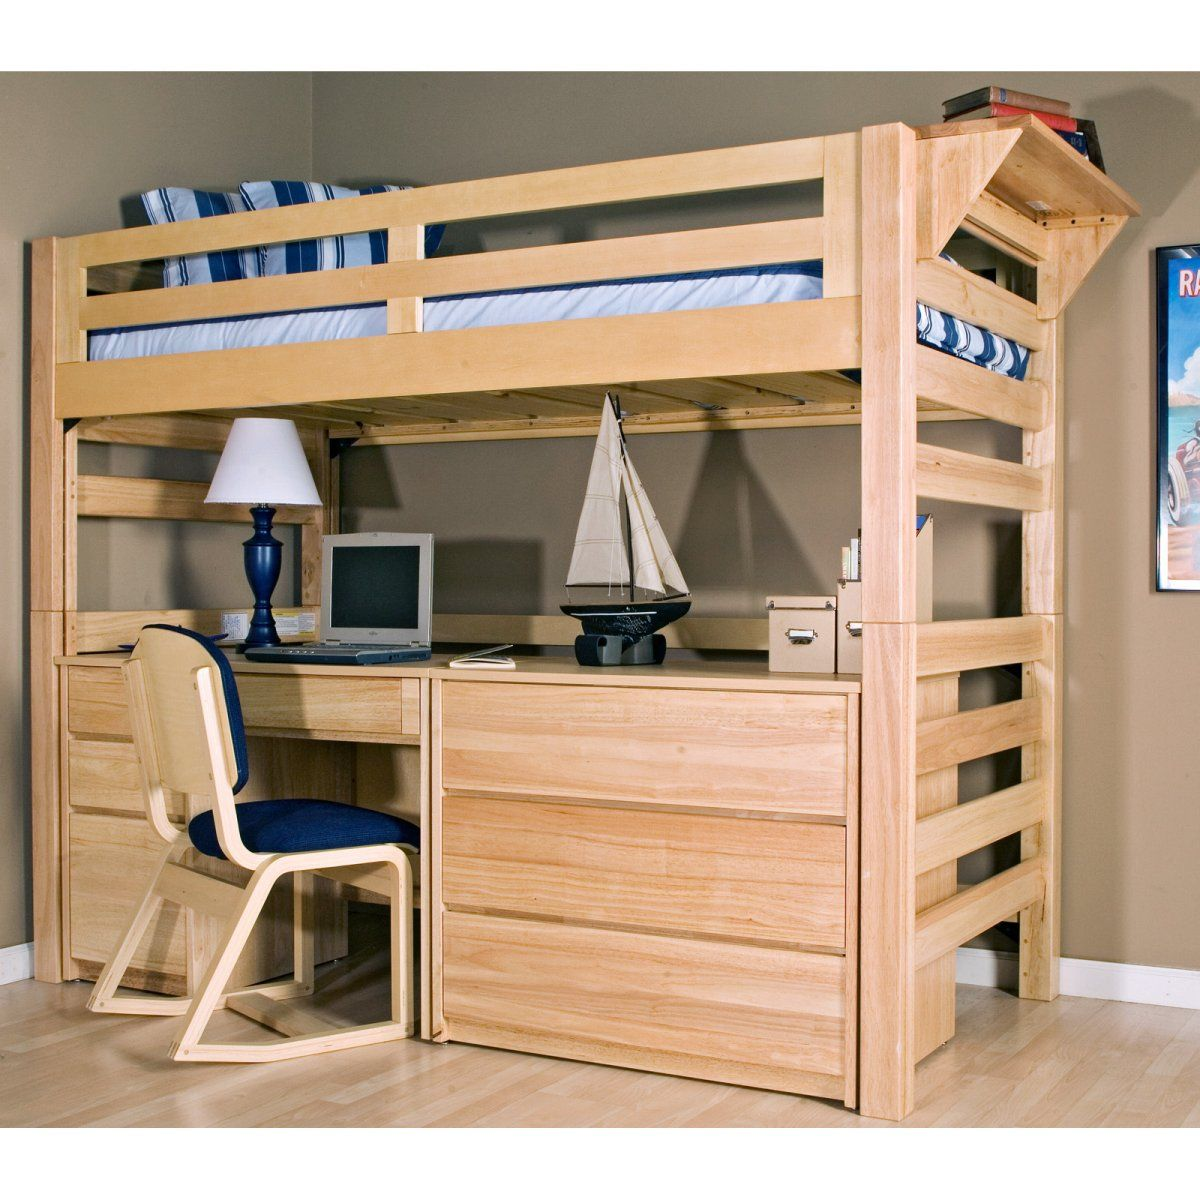 Kid Loft Beds With Desk - Sculpture of wooden loft bed with desk most recommended space available furniture set